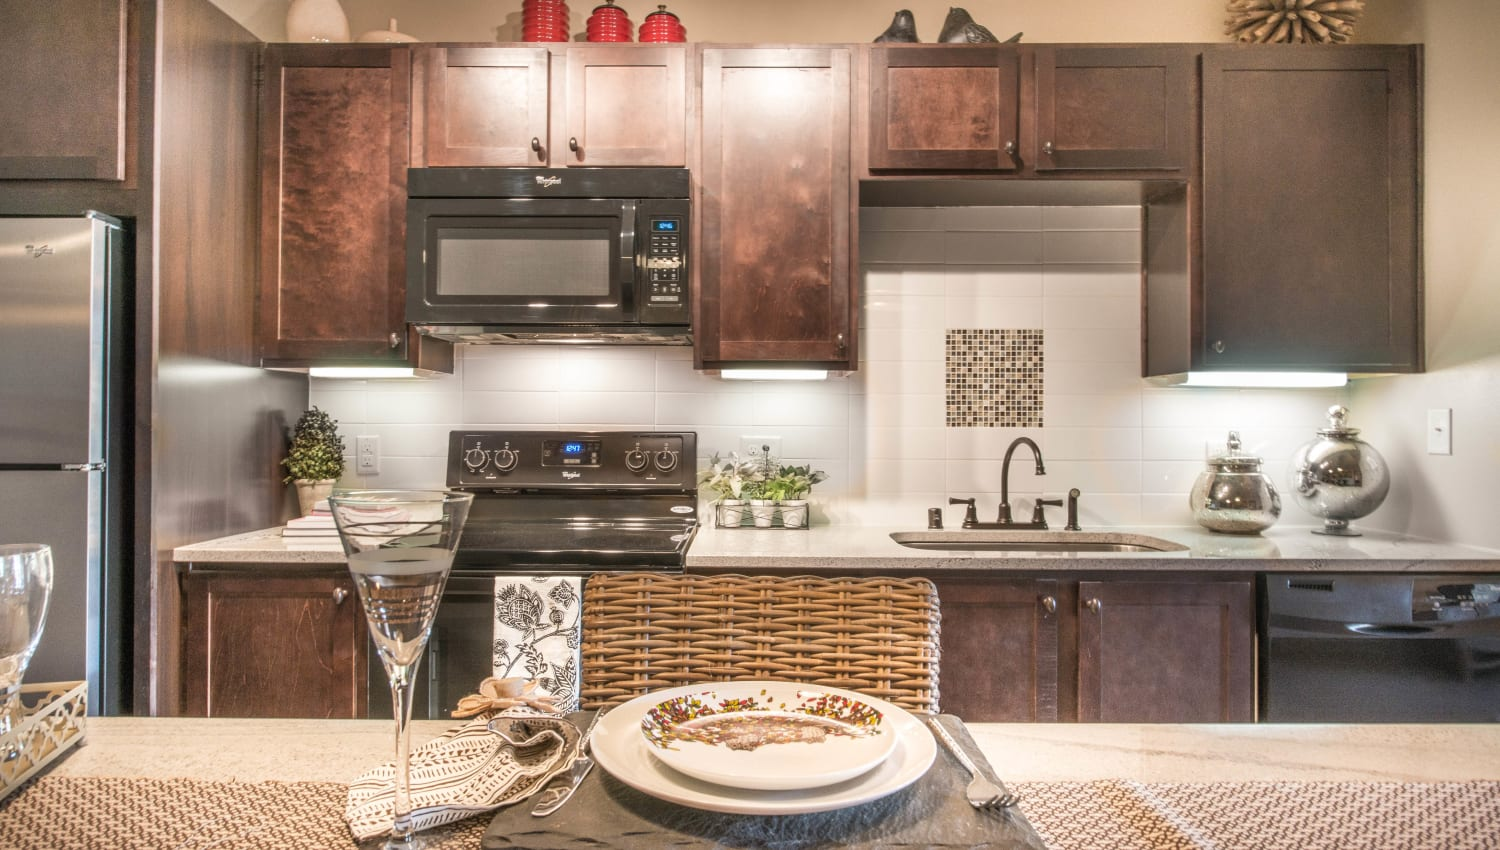 Dark wood cabinetry and granite countertops in a model home's kitchen at Union At Carrollton Square in Carrollton, Texas